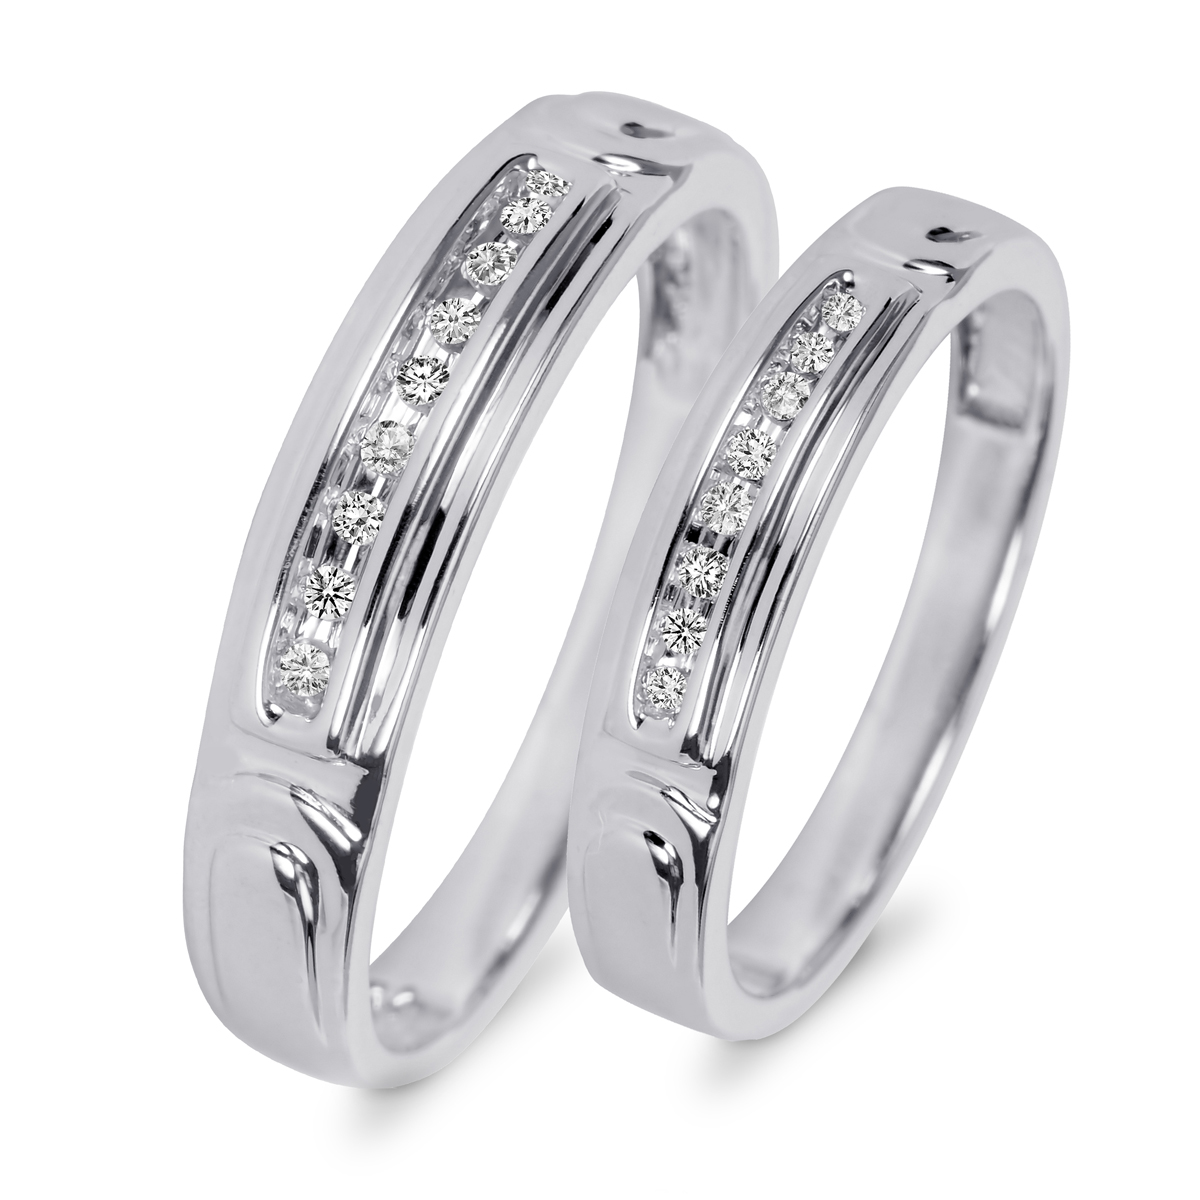 TW Diamond His And Hers Wedding Rings 10K White Gold